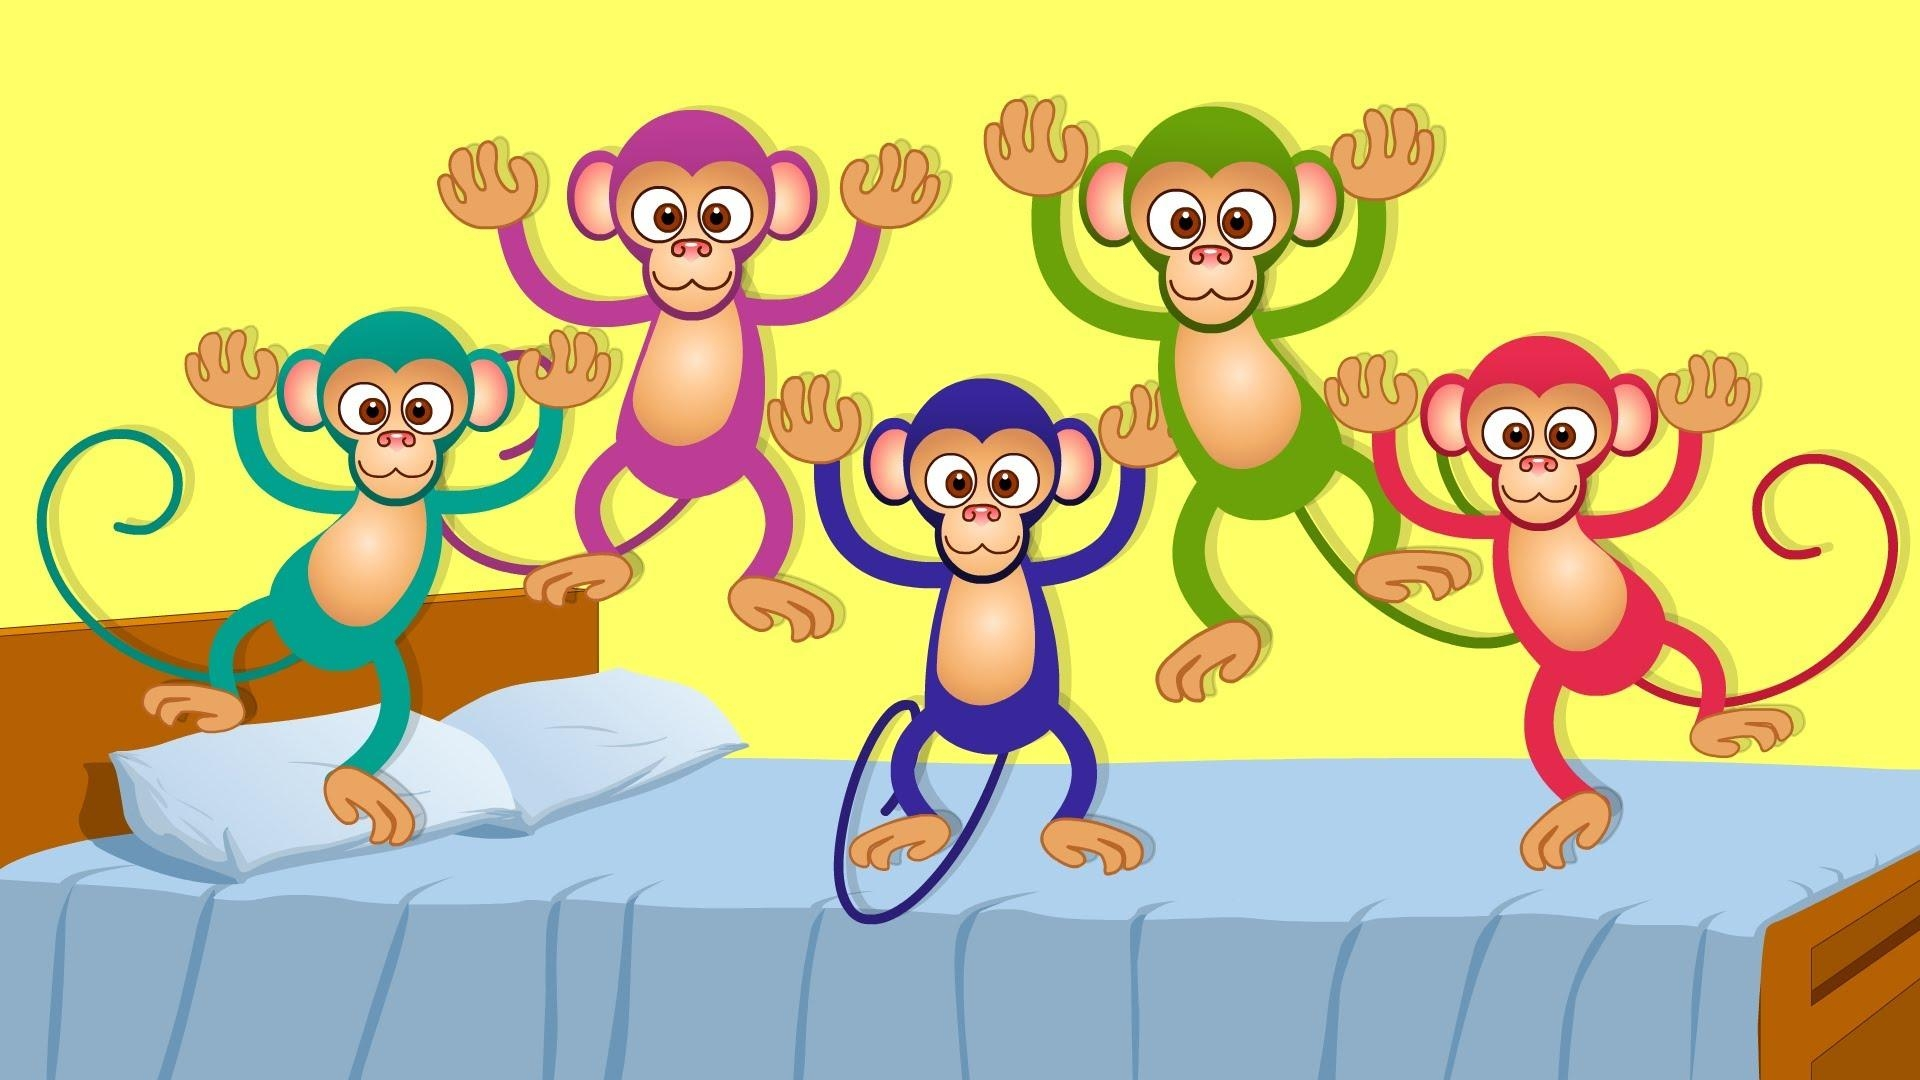 Five Little Monkeys Kids Songs And Nursery Rhymes For Children Intended For No More Monkeys Jumping On The Bed Wall Art (Image 14 of 20)